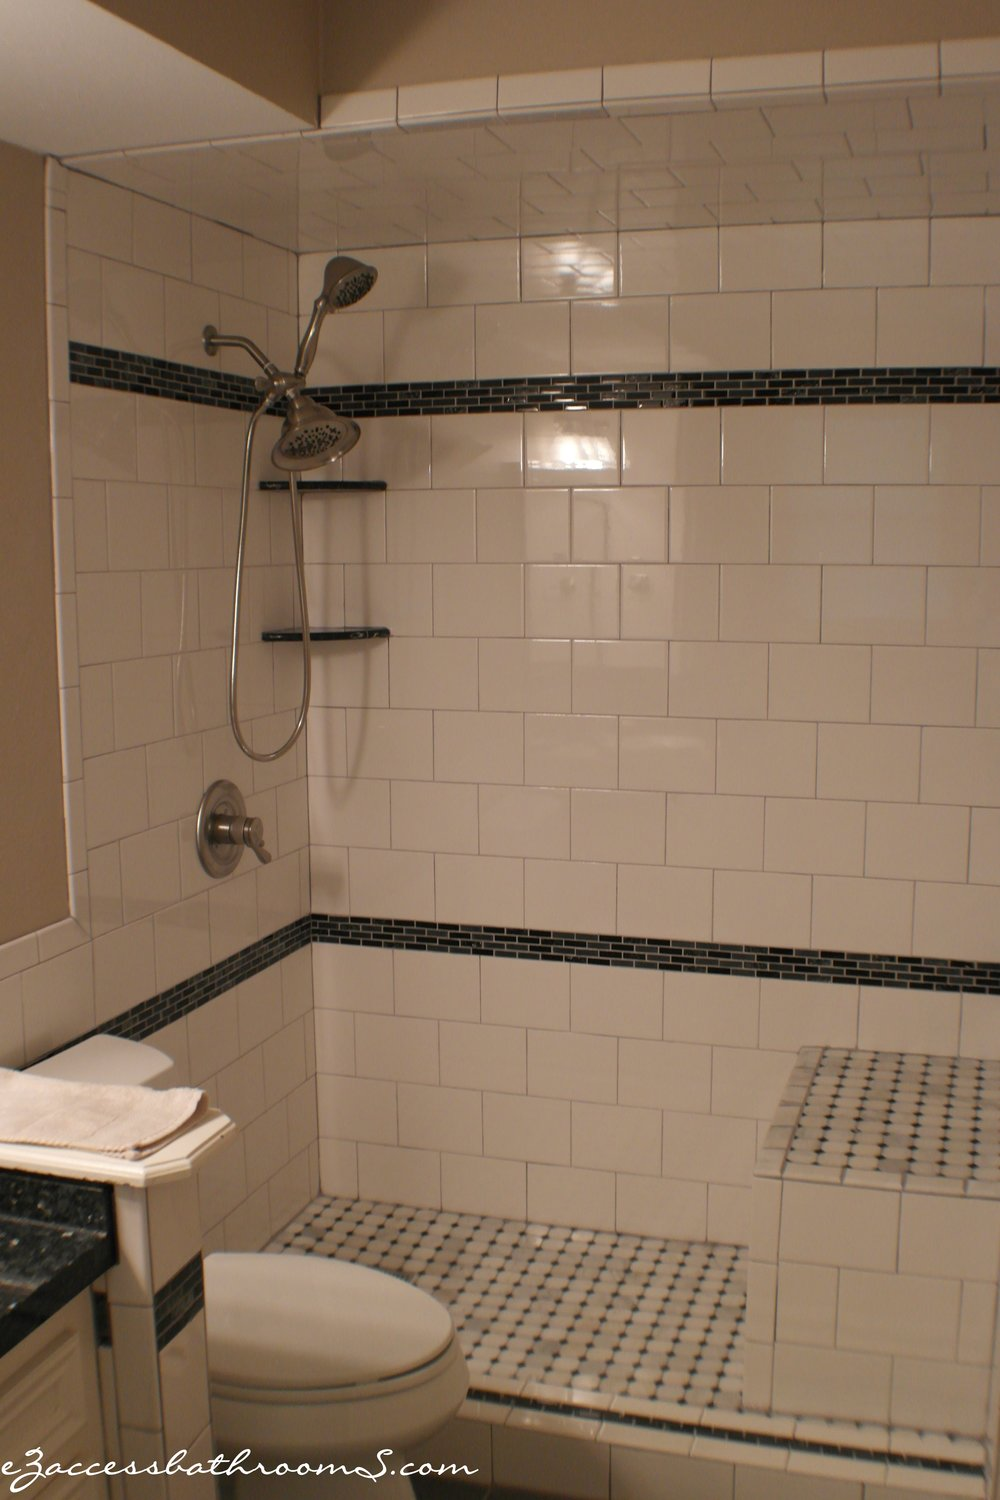 ELDERY FRIENDLY BATHROOMS 01A  EZACCESSBATHROOMS.COM 8322028453  11.JPG